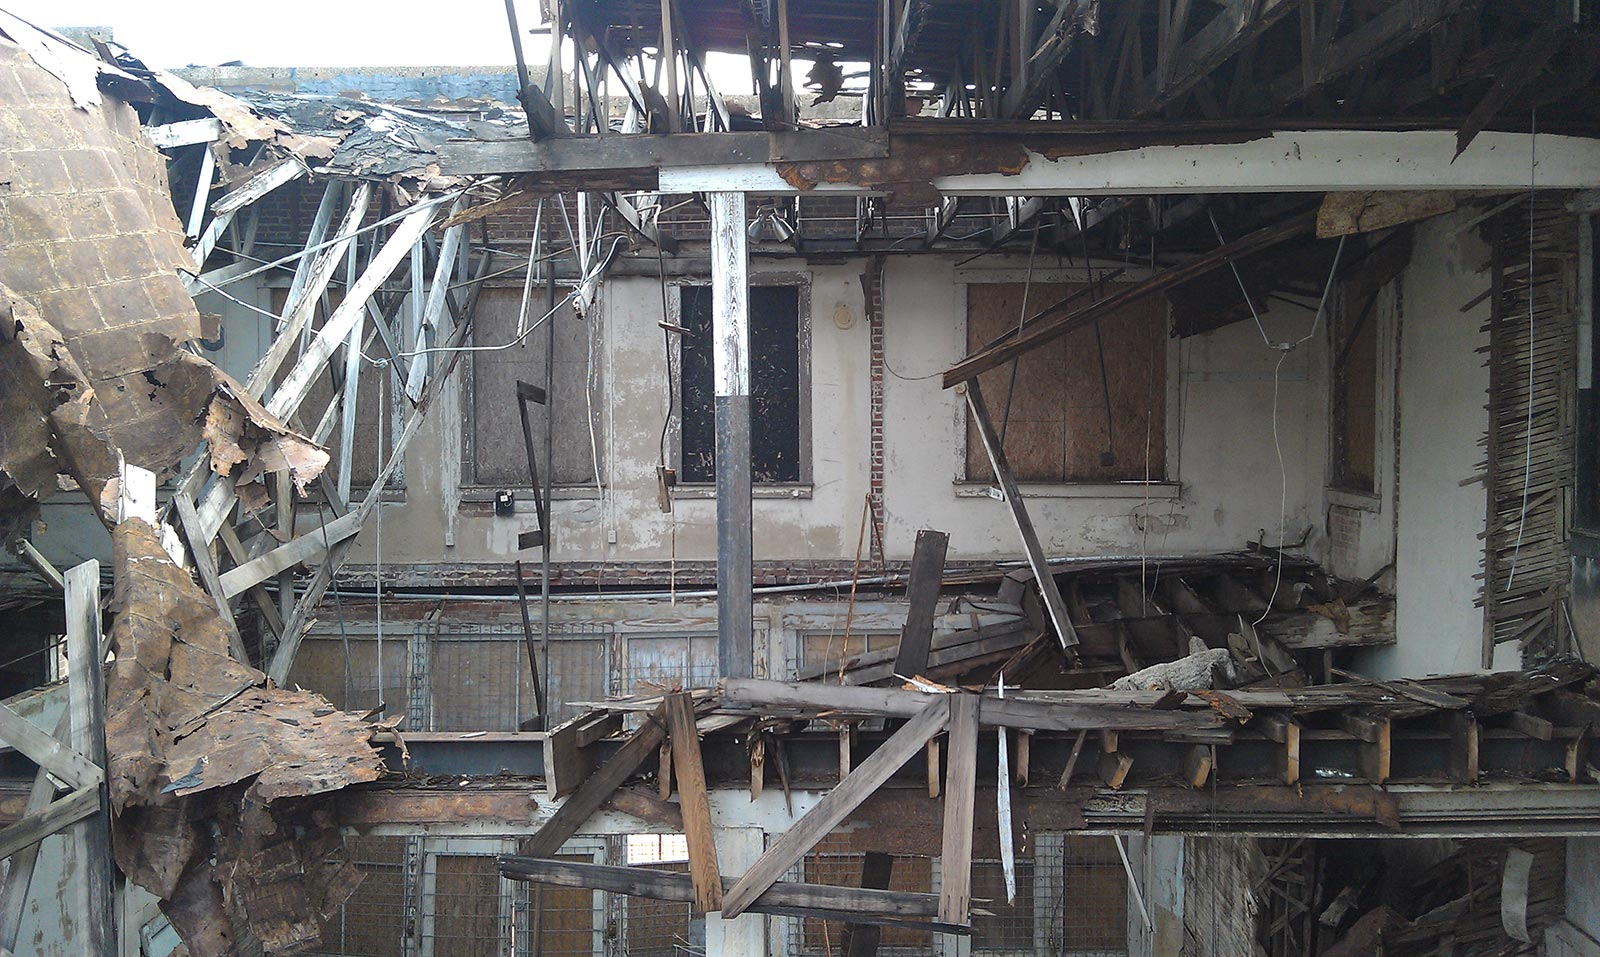 A former cotton exchange building after the roof collapsed into the second floor and turned the back half of the building into a pile of rubble.